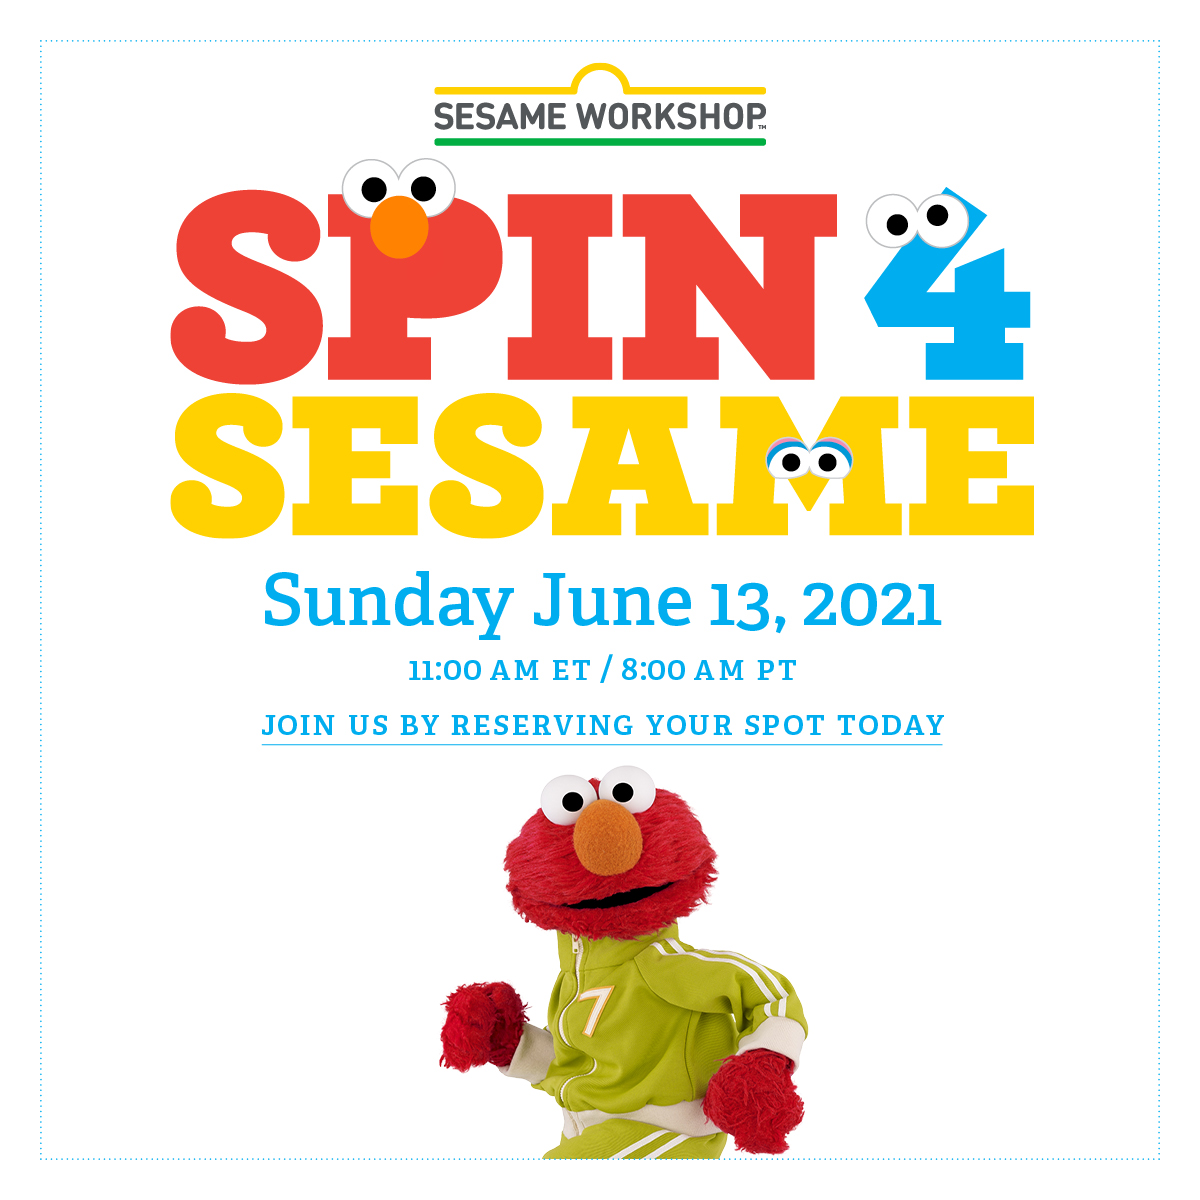 On June 13th, join Spin4Sesame, a fundraiser supporting our mission to help children everywhere grow smarter, stronger, and kinder. Participate by using the Peloton Bike and App. For ride details and to reserve your spot visit: https://t.co/lFcjCCKWgS @onepeloton https://t.co/NIBPA9R6R6